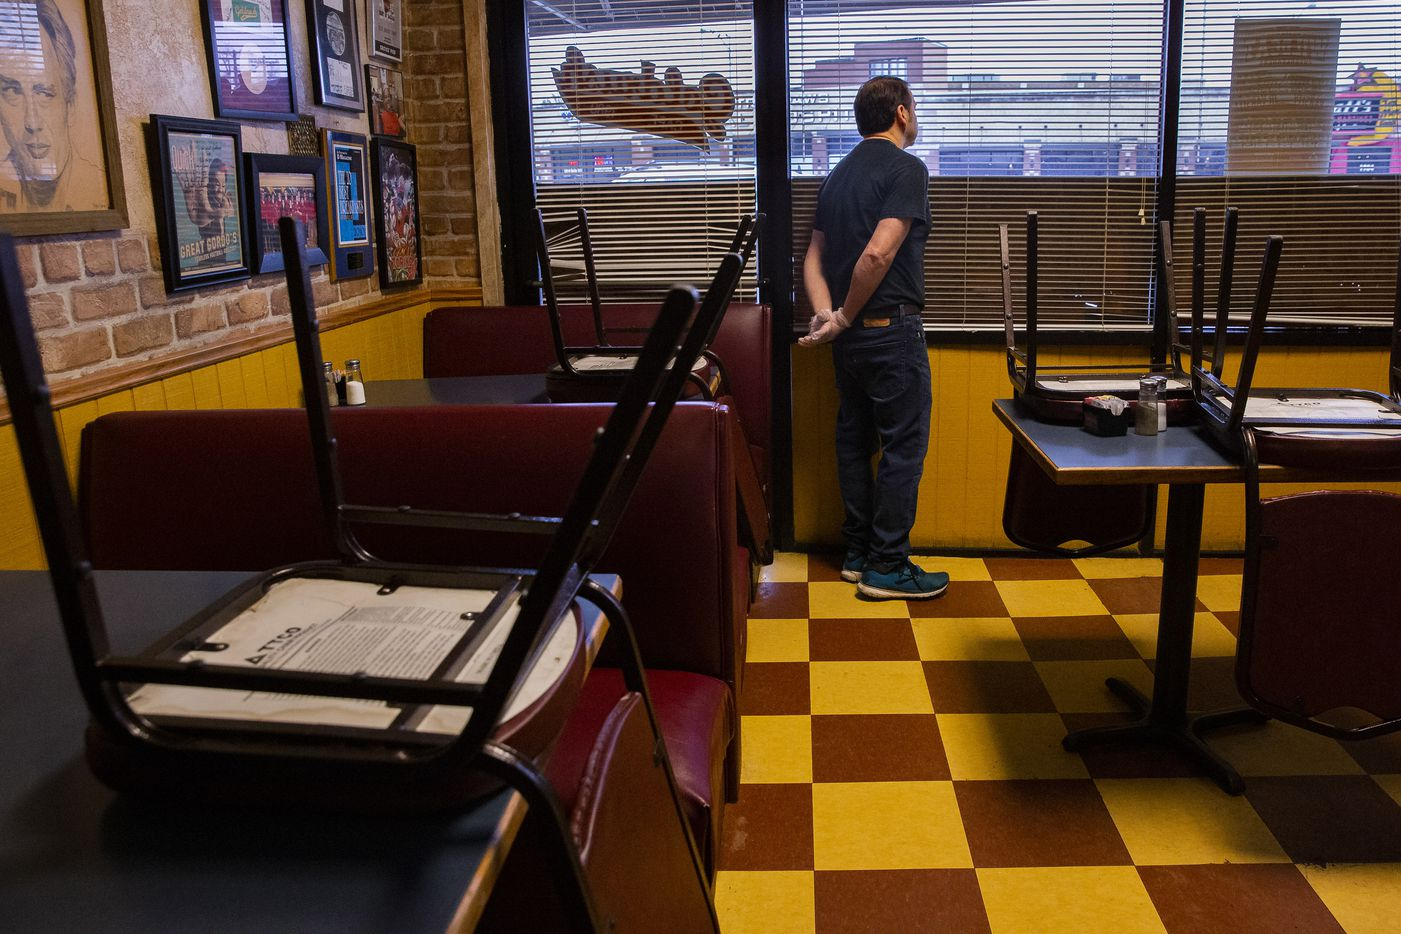 Goldrush Cafe Owner George Sanchez looks outside his window as he waits for customers on March 16, 2020 in Dallas. The outbreak of the new coronavirus has led Sanchez to limit the number of people allowed in the restaurant and to primarily do to-go orders.